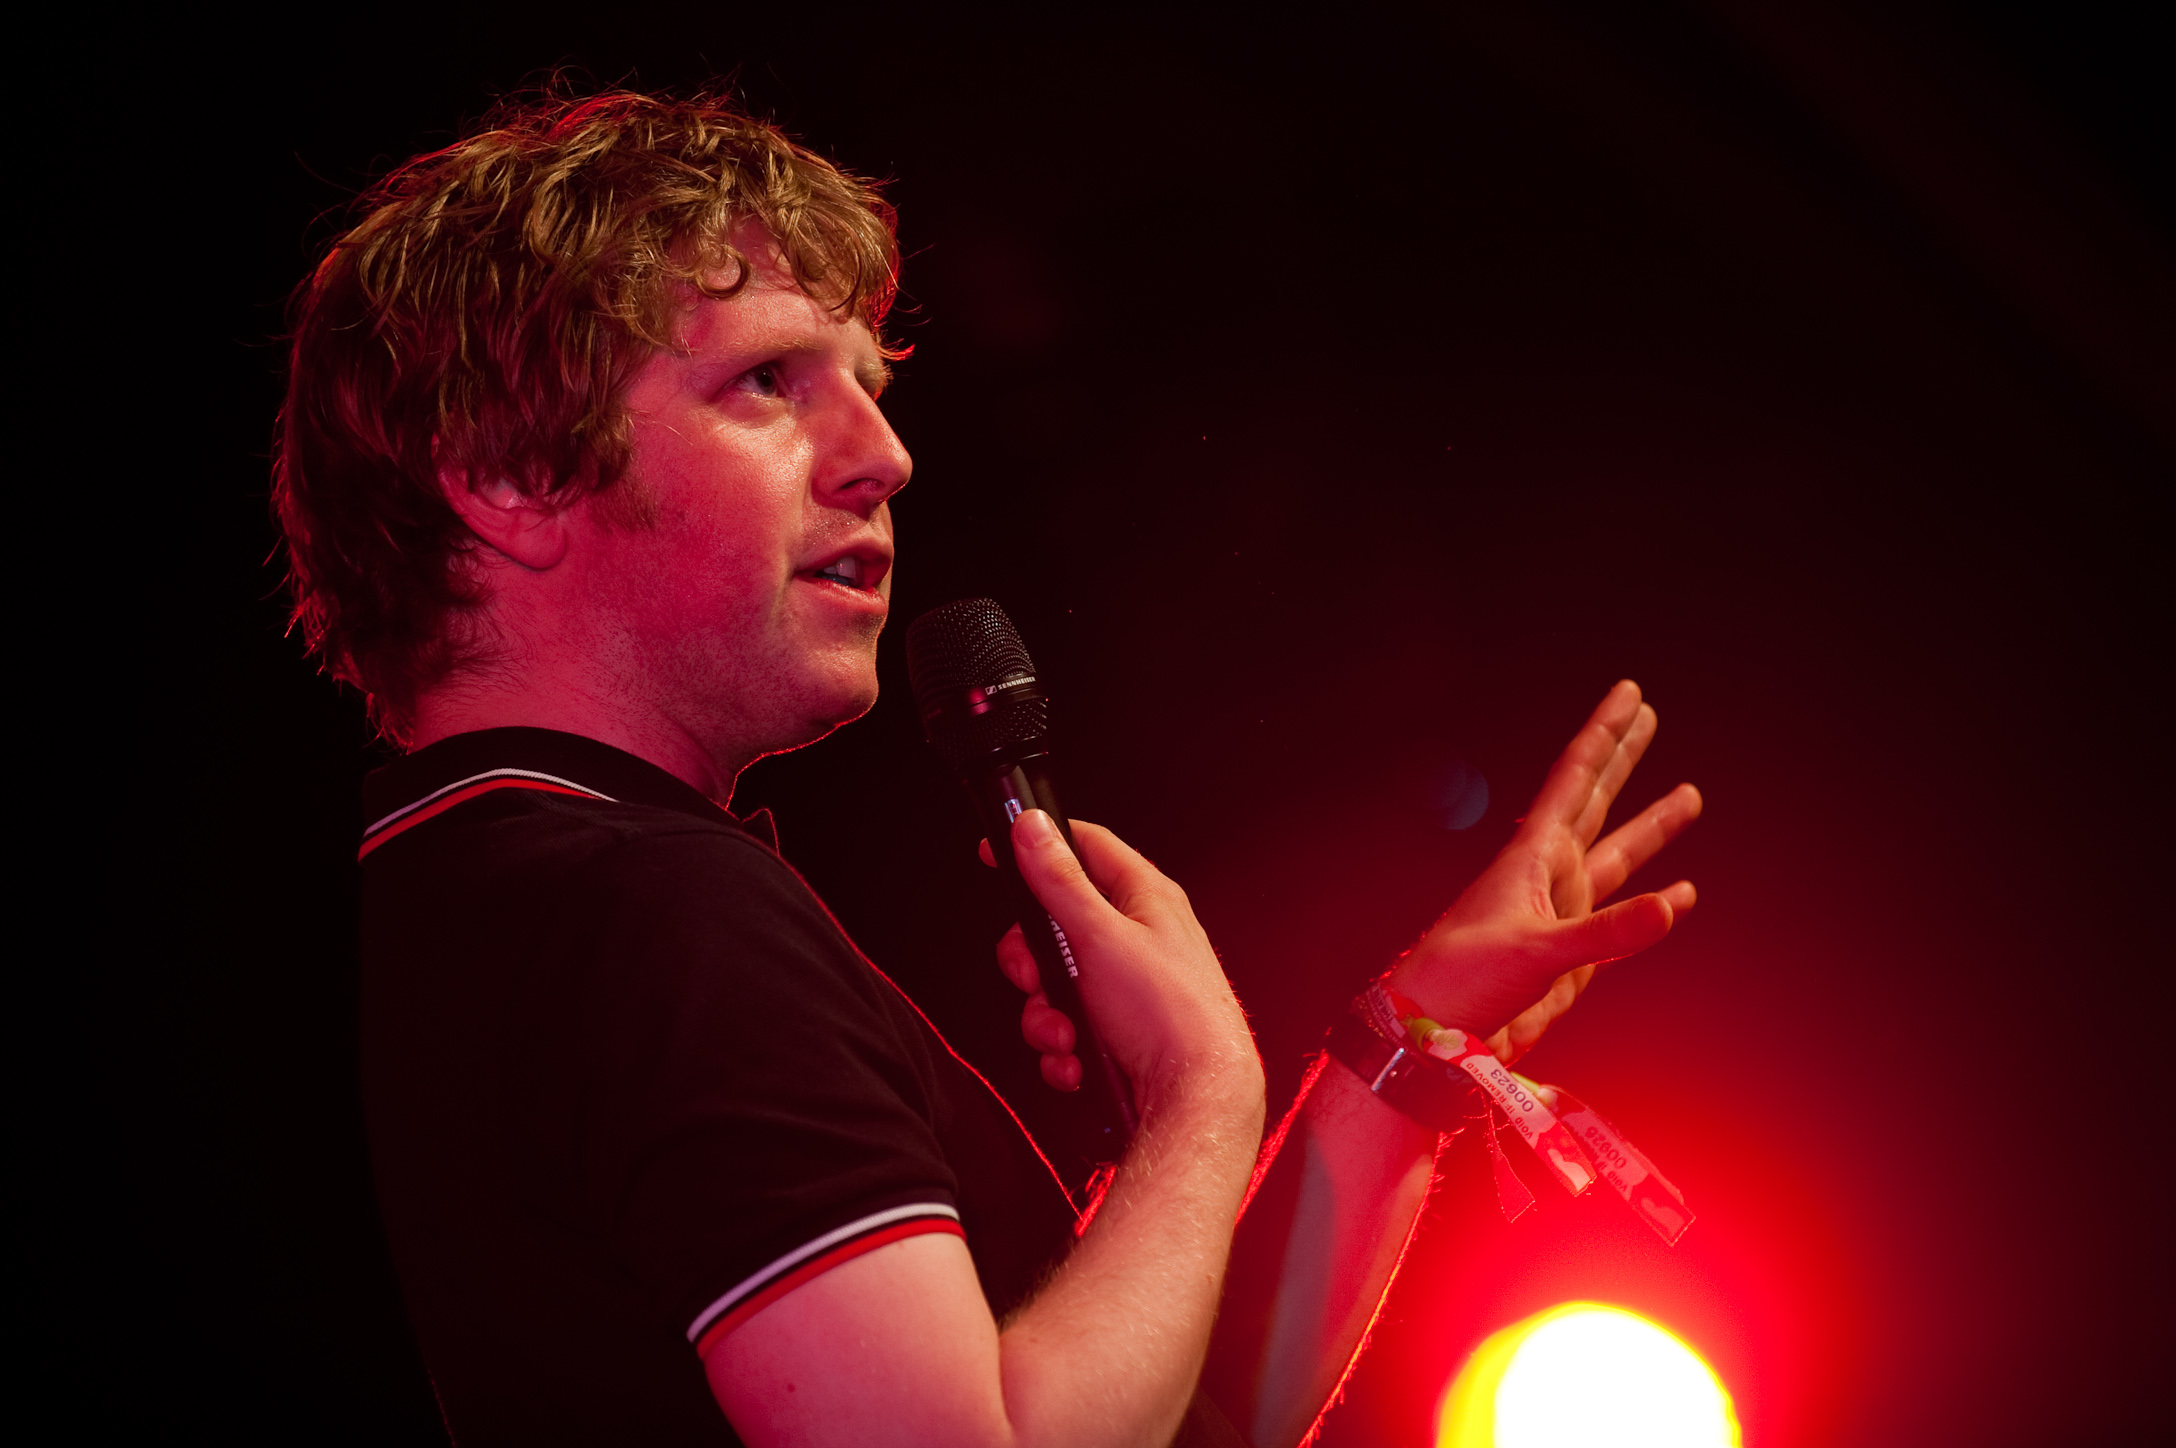 The 35-year old son of father (?) and mother(?) Josh Widdicombe in 2018 photo. Josh Widdicombe earned a  million dollar salary - leaving the net worth at 2 million in 2018